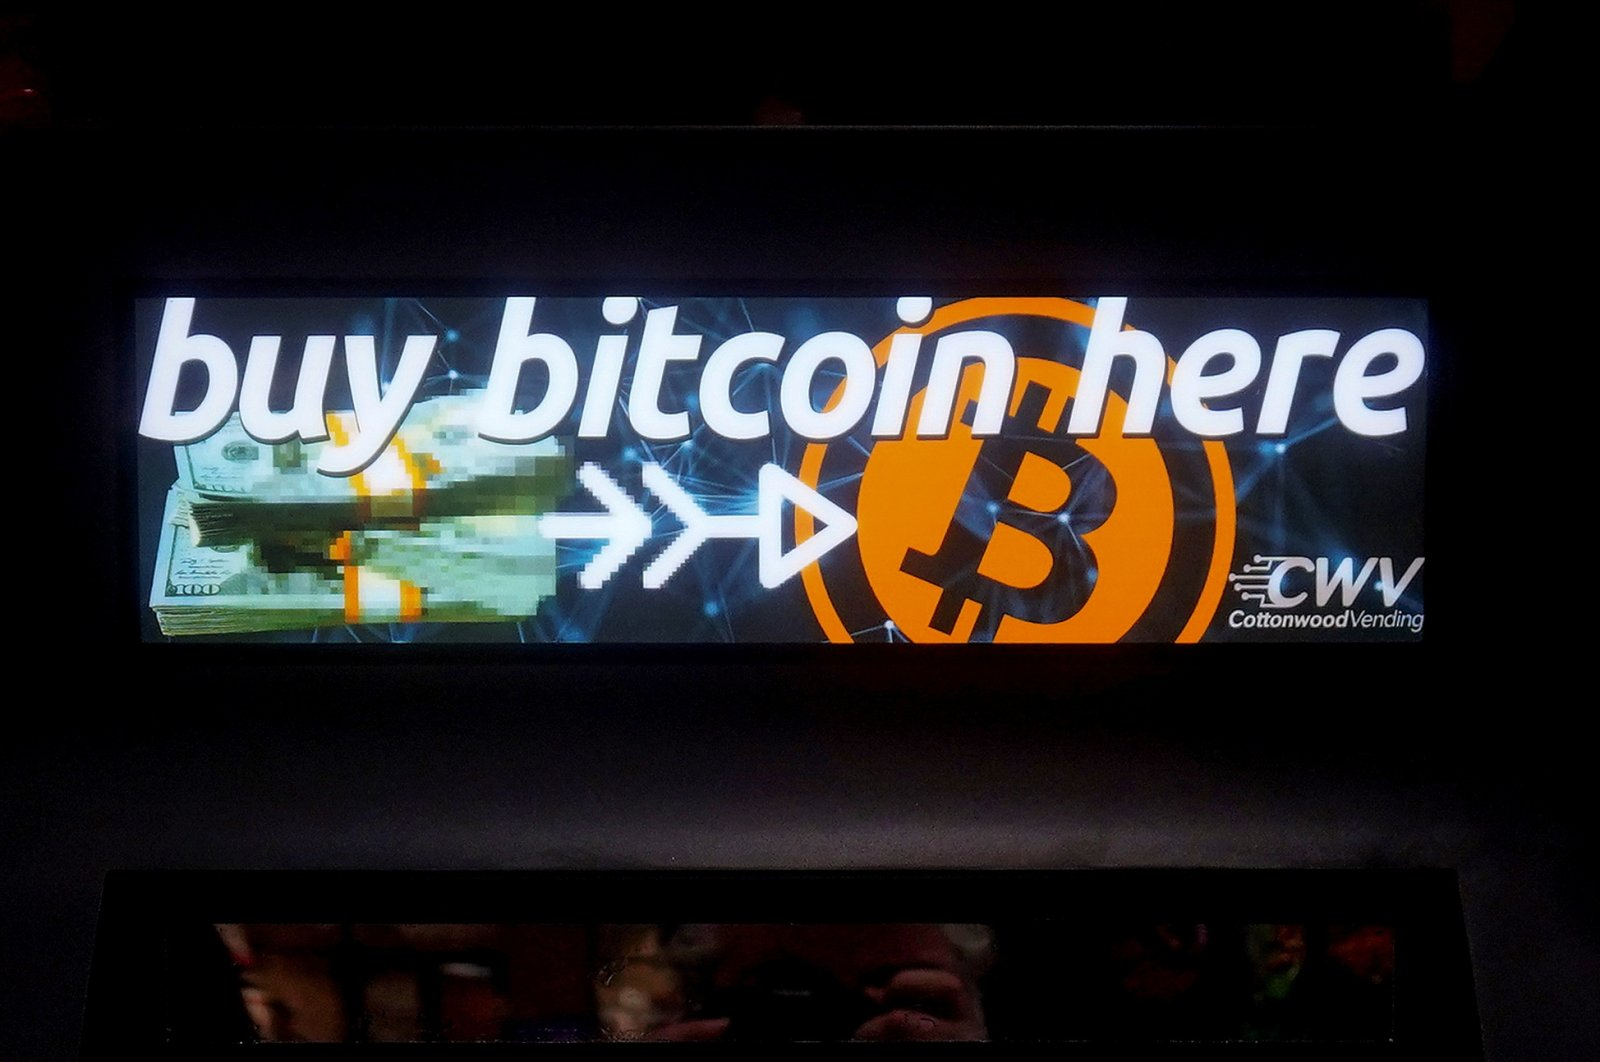 A Bitcoin ATM sign is pictured in a bodega in the Manhattan borough of New York City, New York, U.S., Feb. 9, 2021. (Reuters Photo)